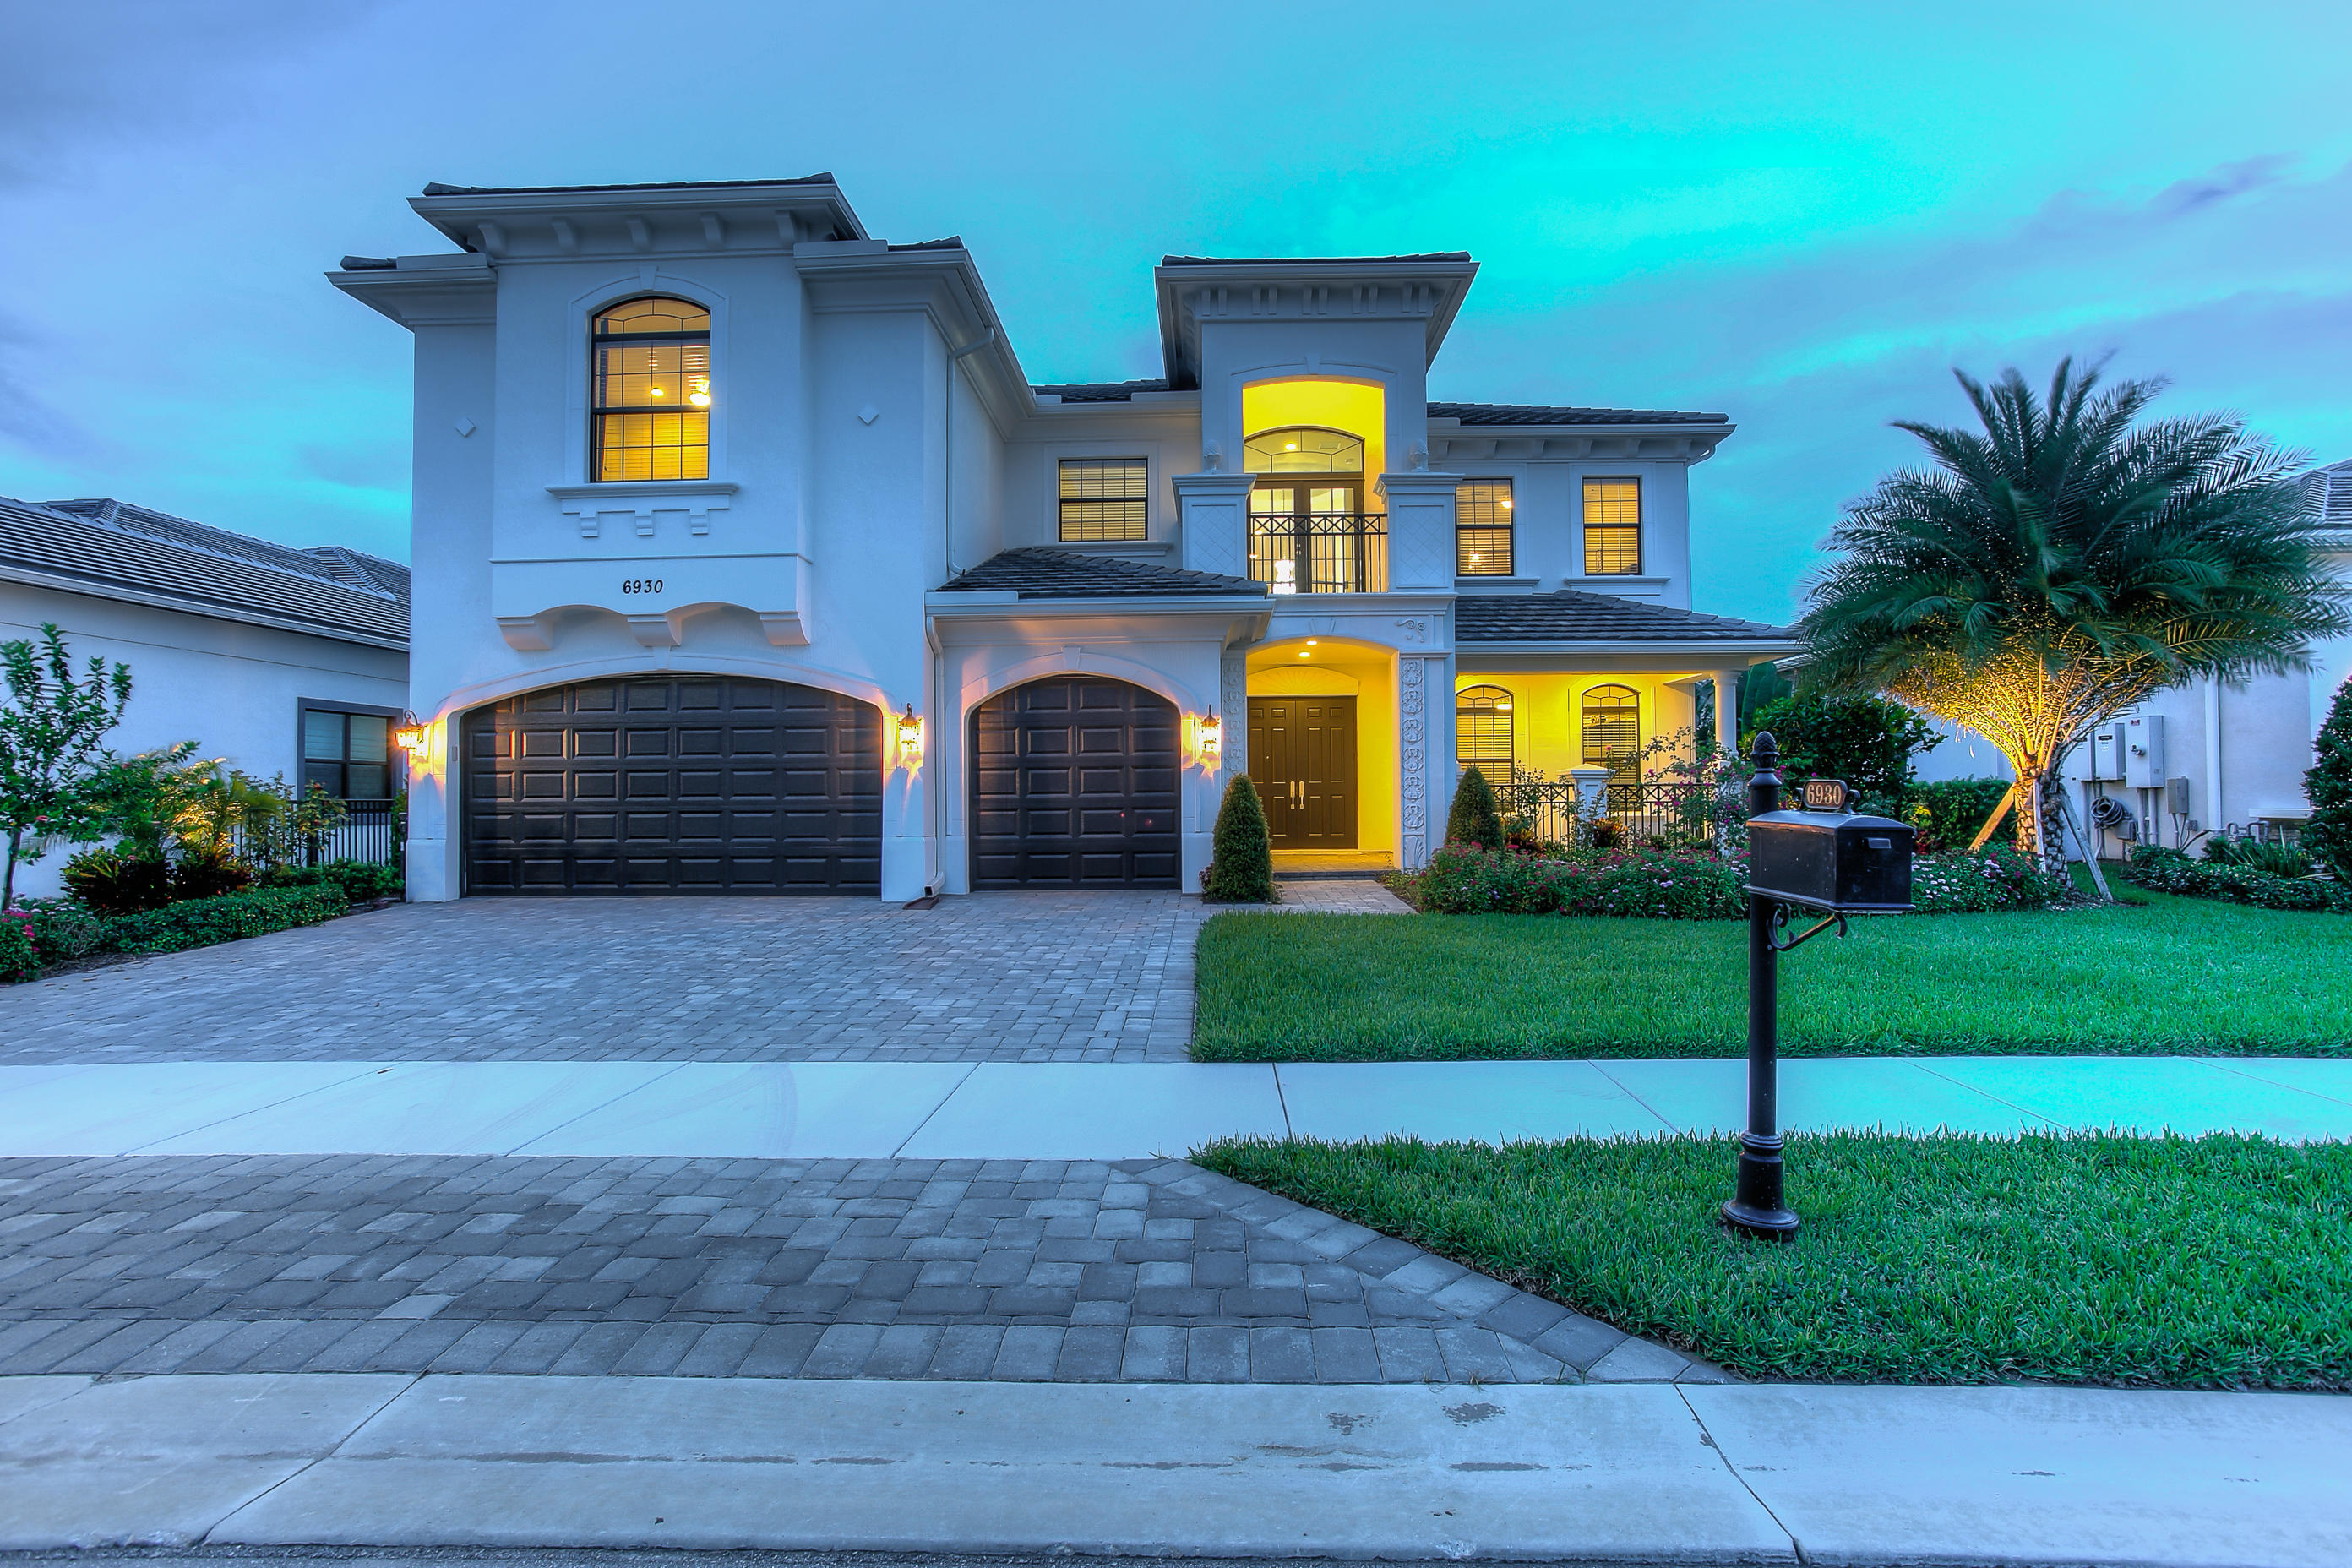 6930 Nw 25th Way Boca Raton, FL 33496